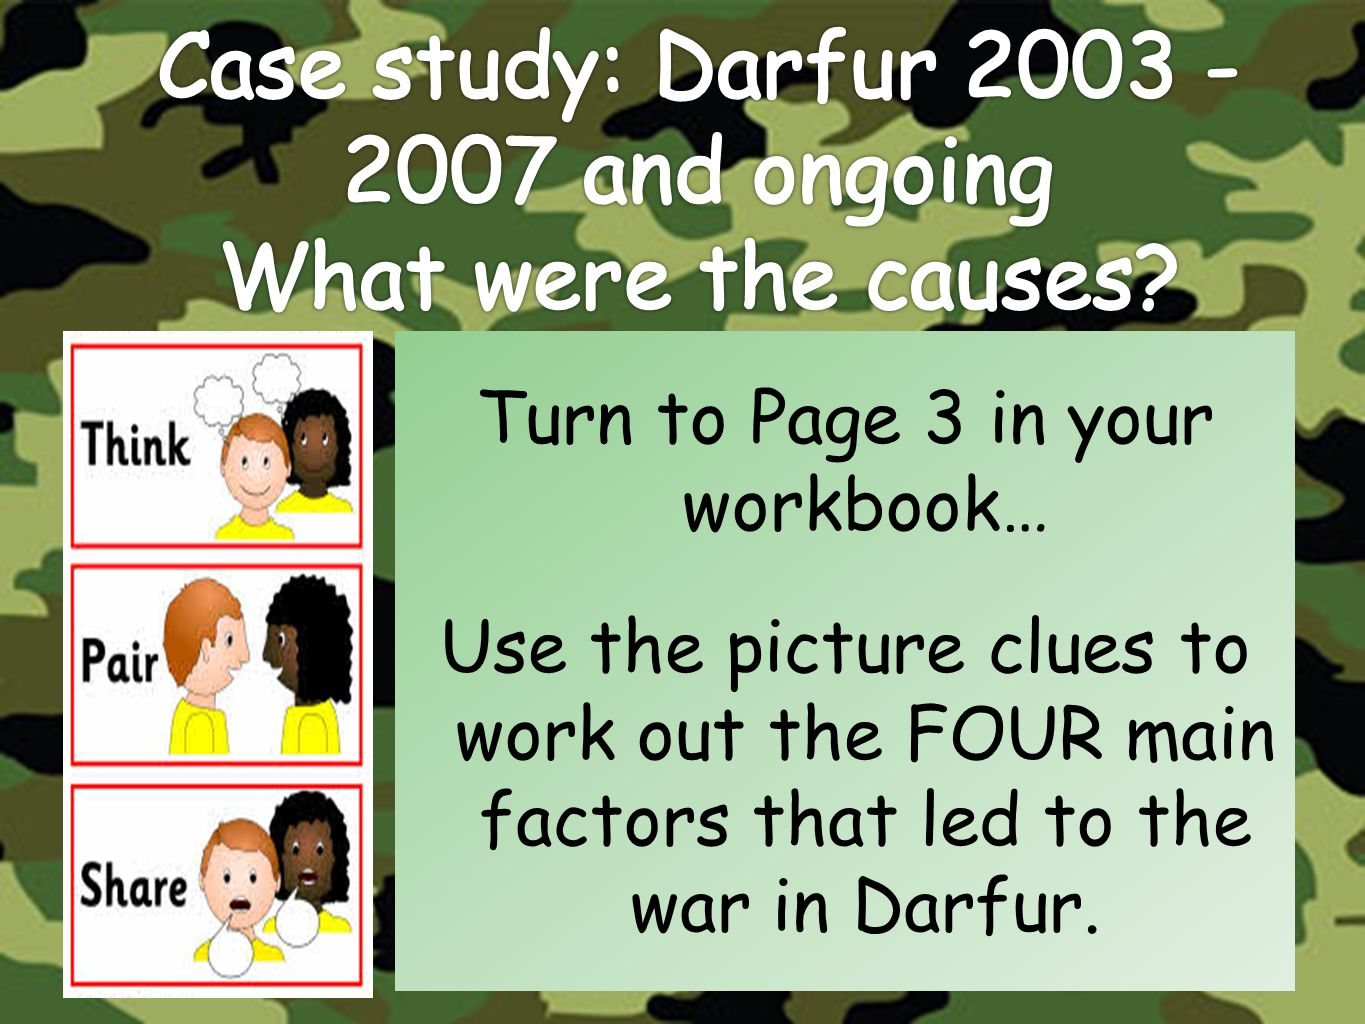 Case study: Darfur 2003 - 2007 and ongoing What were the causes